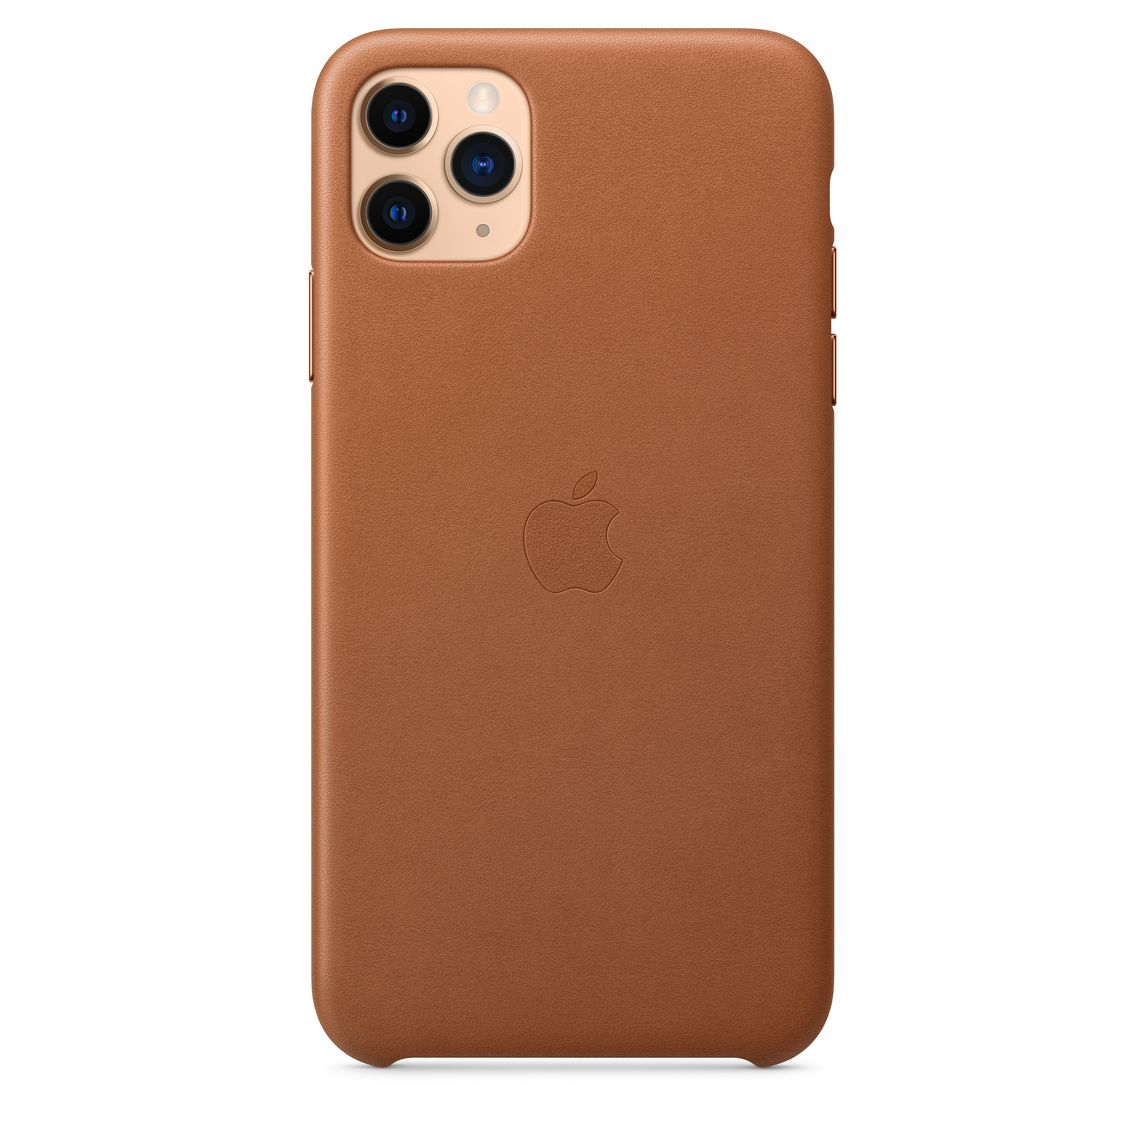 iPhone 11 Pro Max Leather Case Saddle Brown